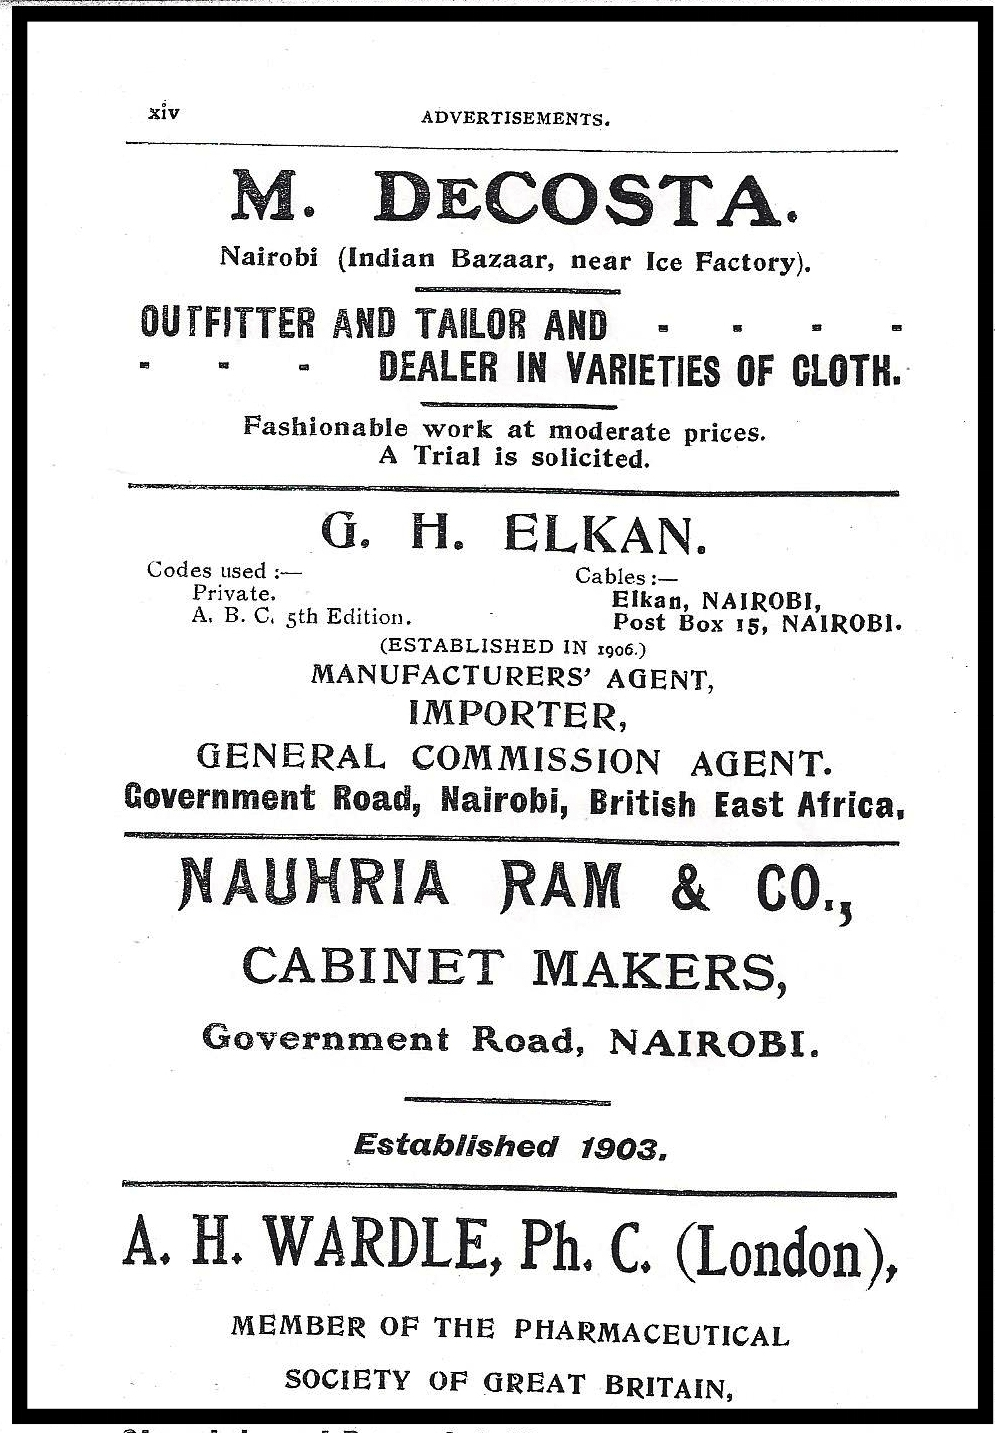 A Goan tailoring outlet located at the Nairobi Indian bazaar advertising in the Kenya Directory of 1920. Courtesy Clifford J. Pereira.